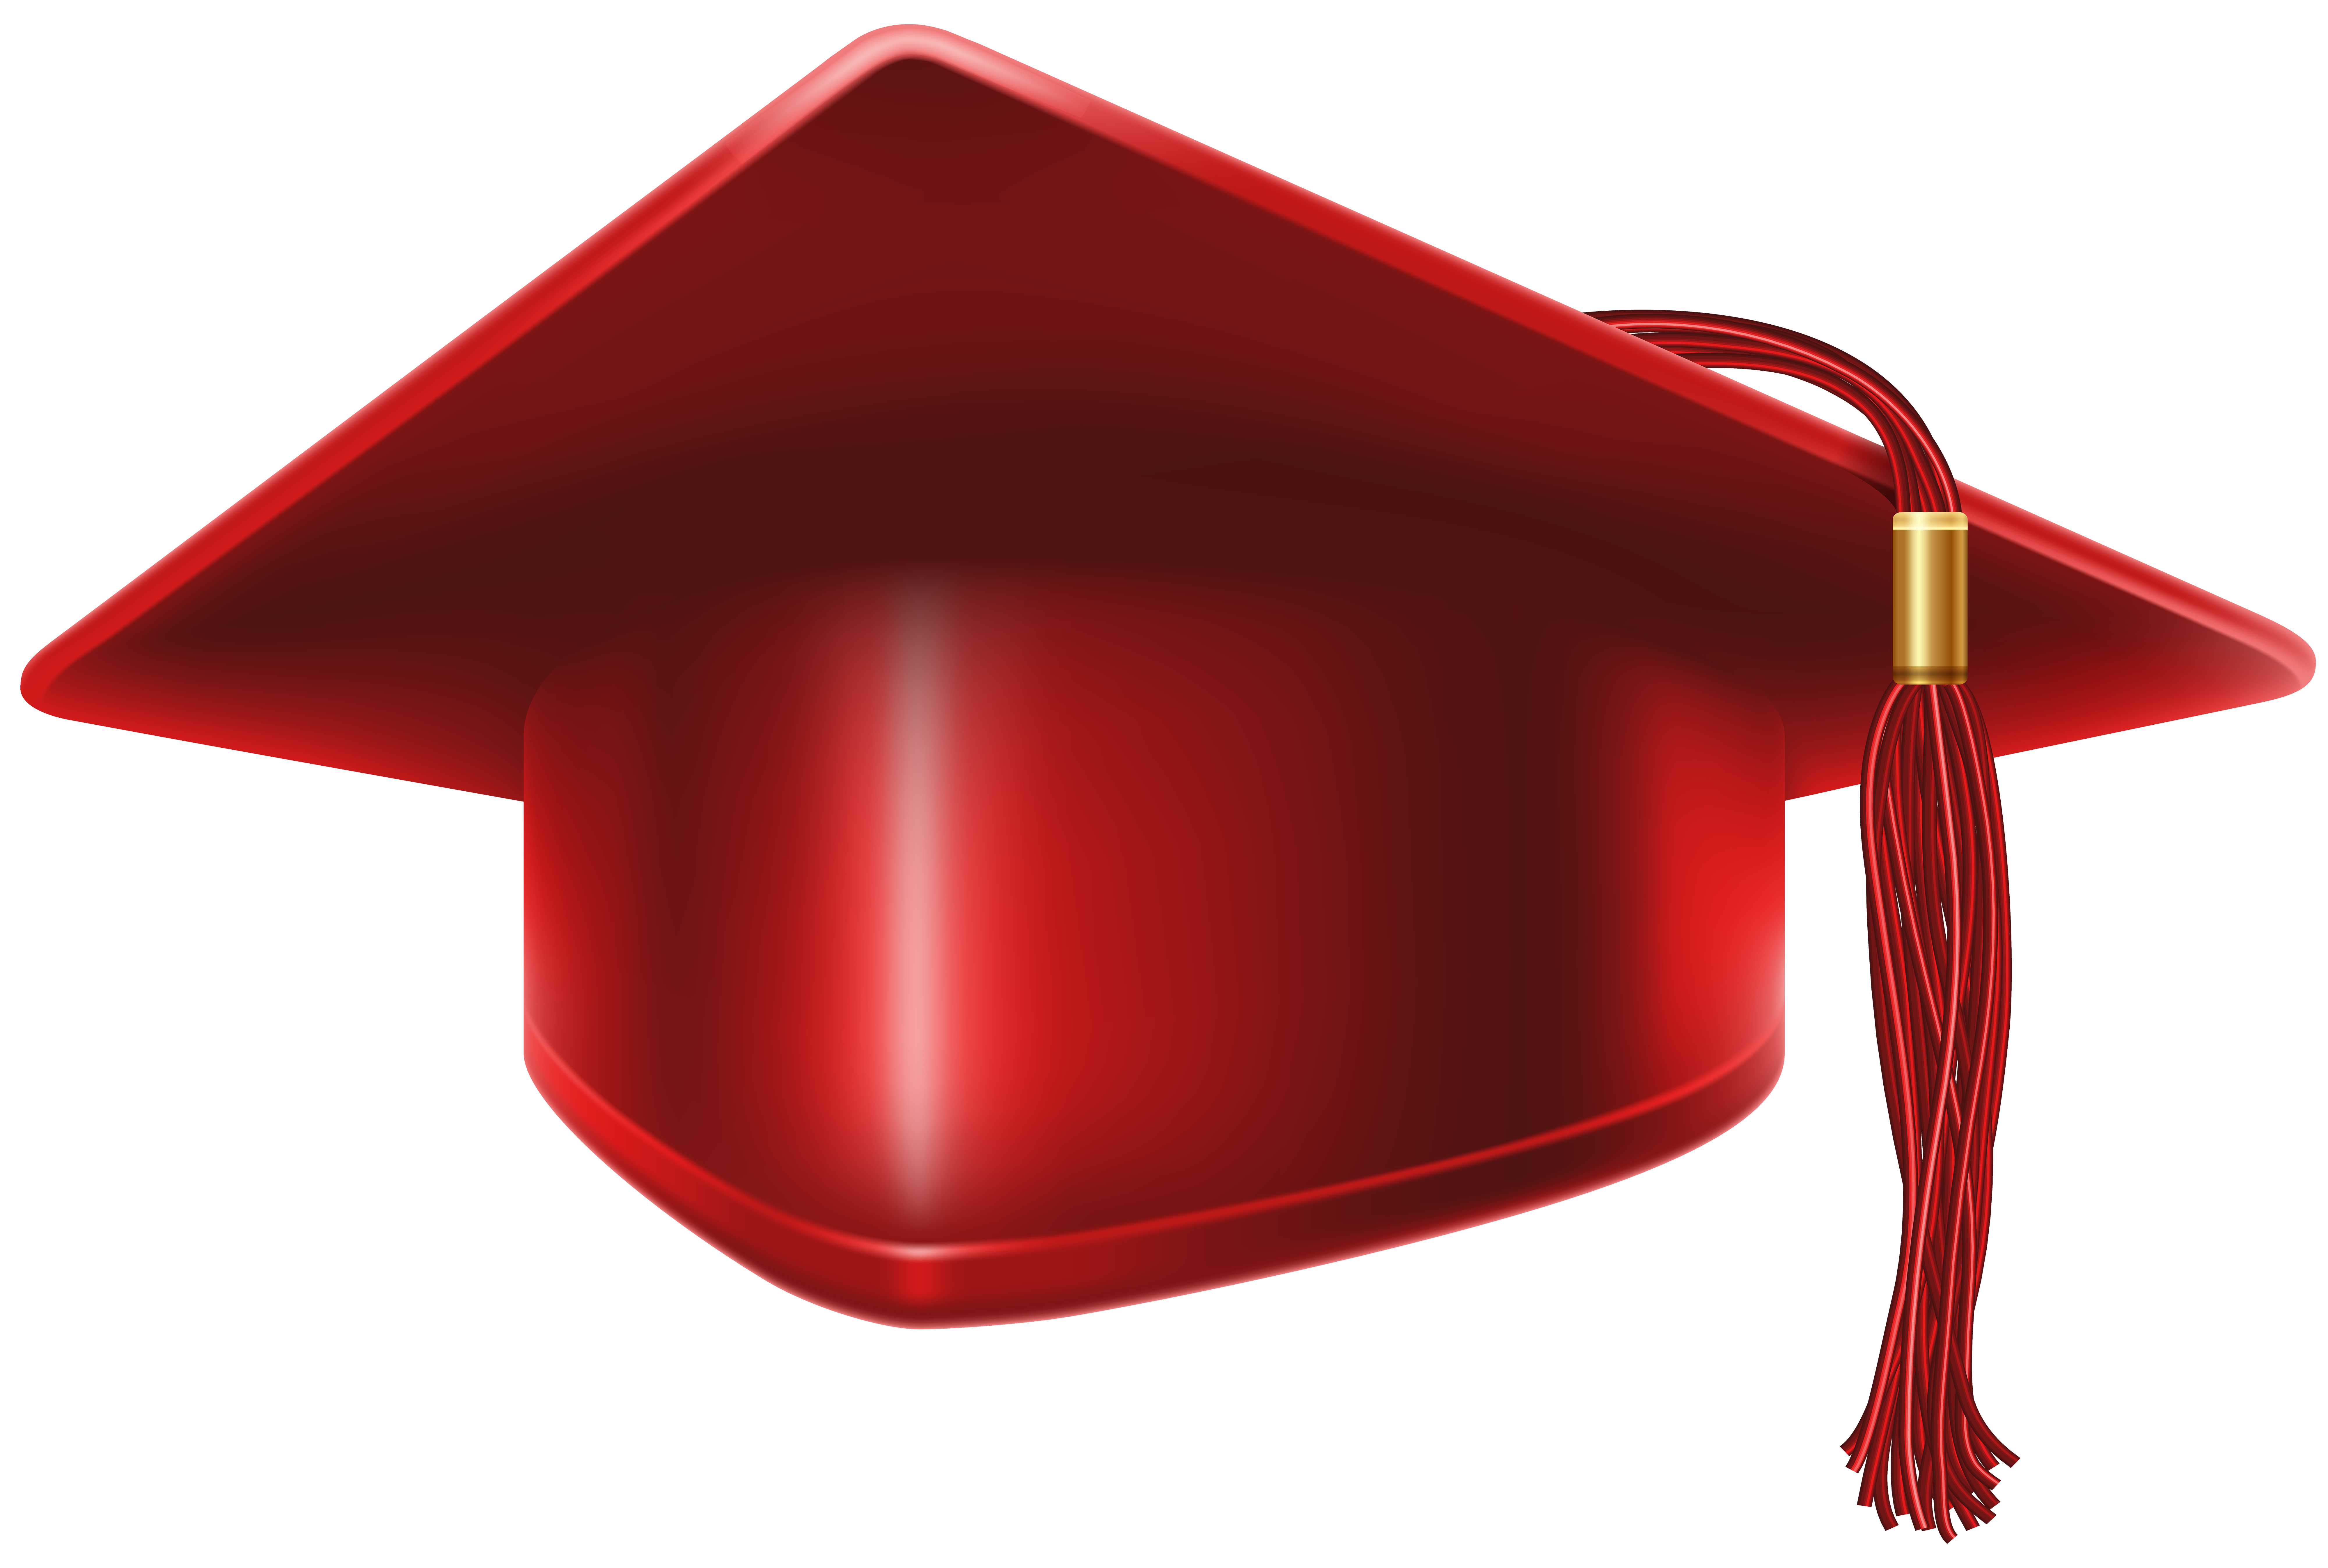 Cap And Gown Clipart   Free download best Cap And Gown Clipart on ...